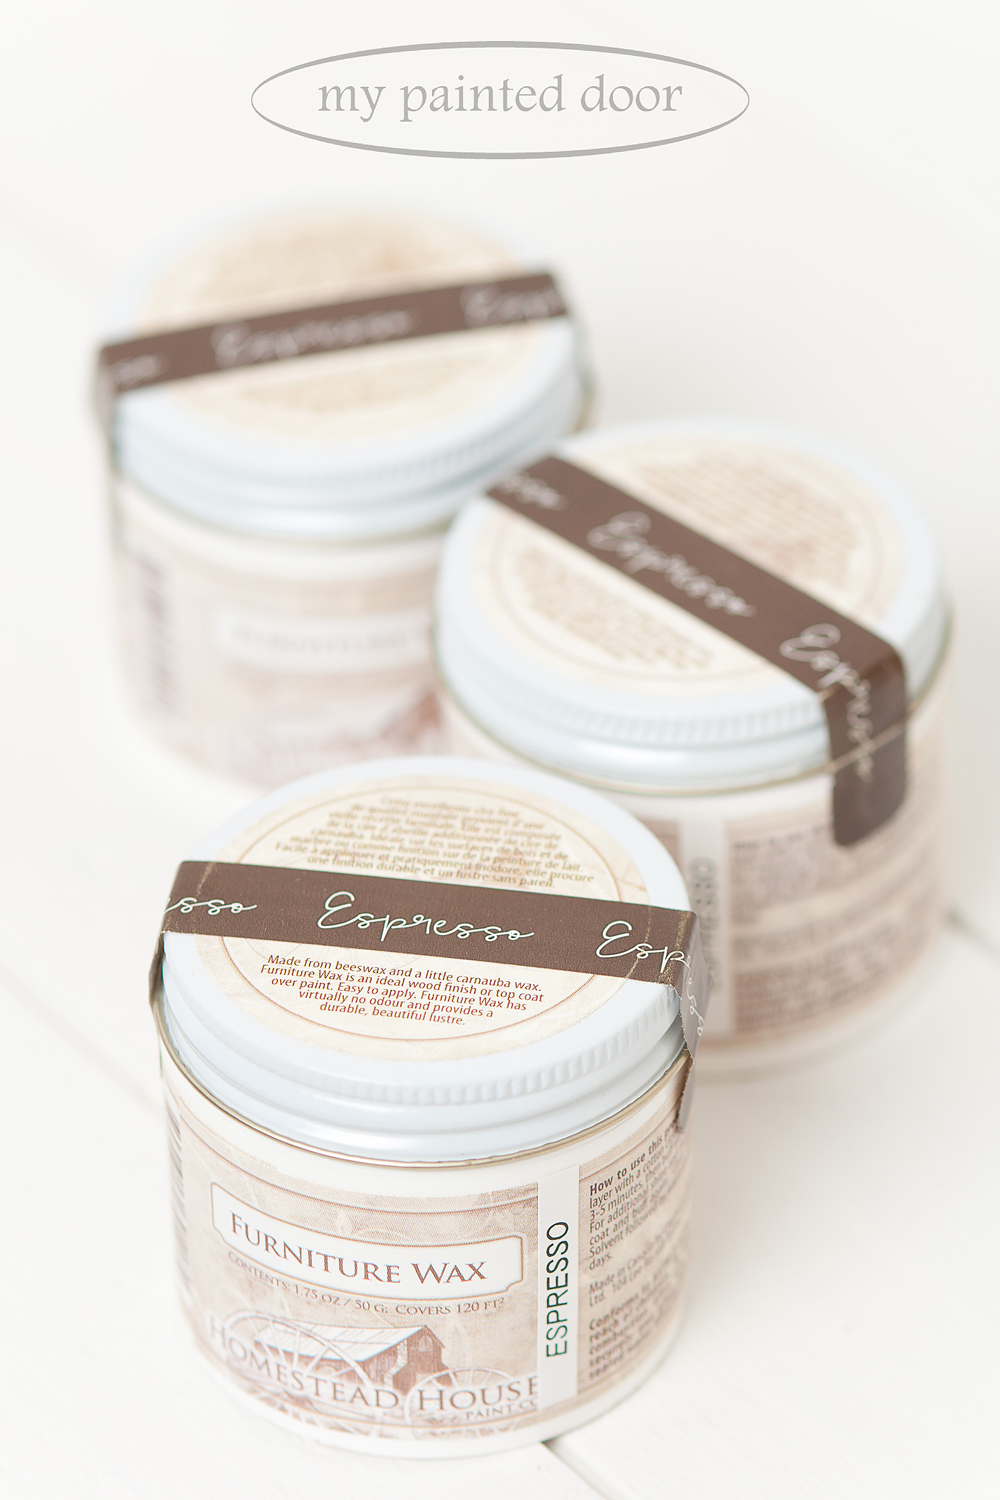 Homestead House Espresso Furniture Wax now available at My Painted Door.